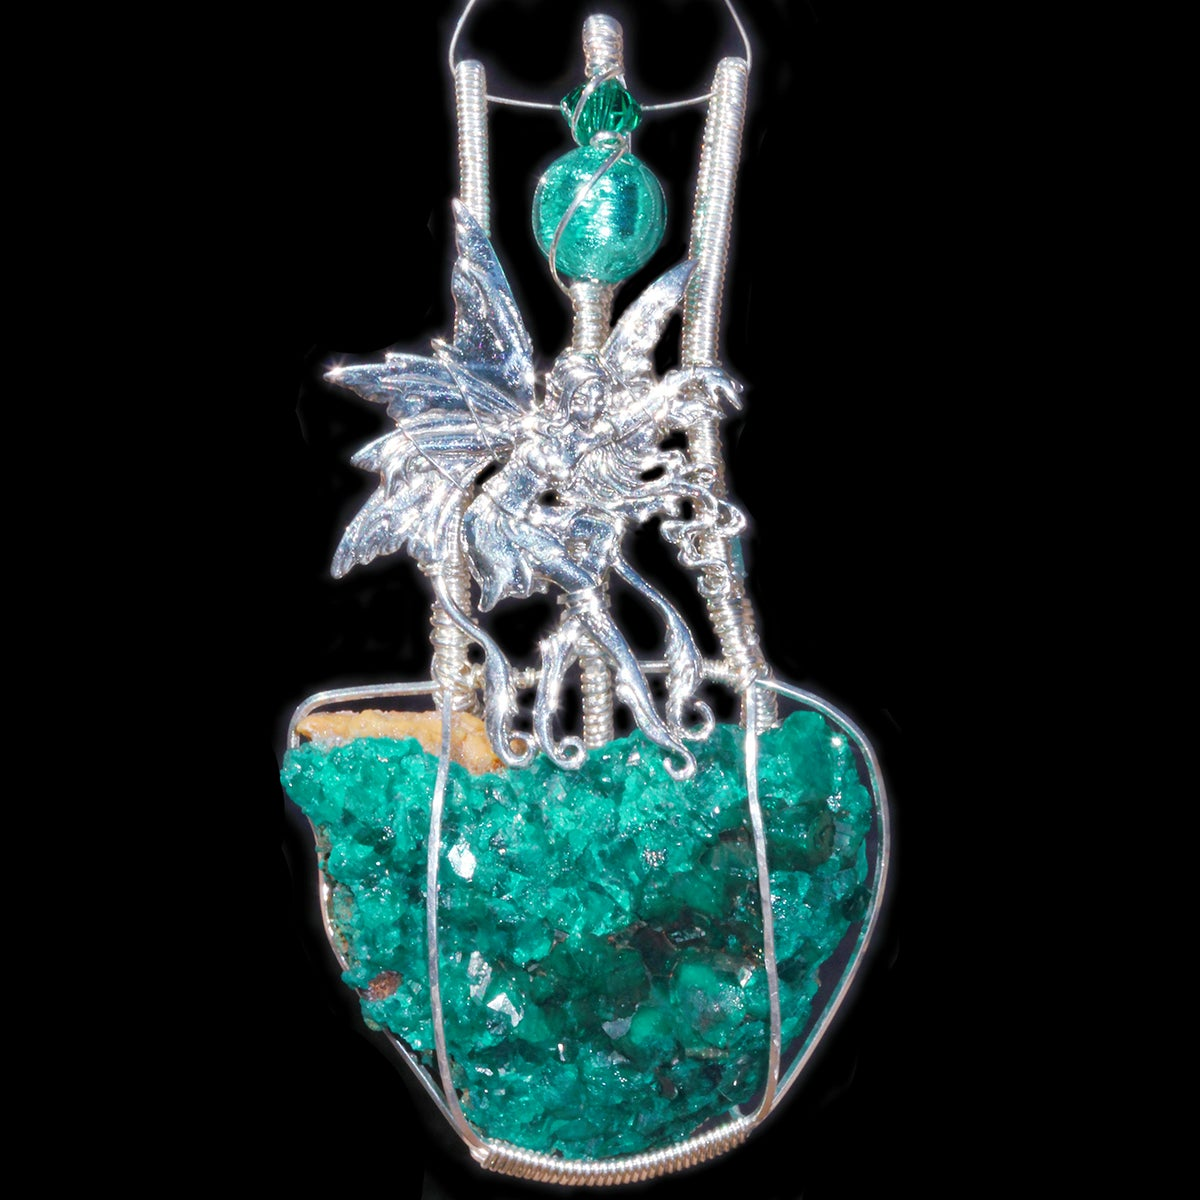 Large Dioptase Crystal Handmade Pendant with Dancing Fairy